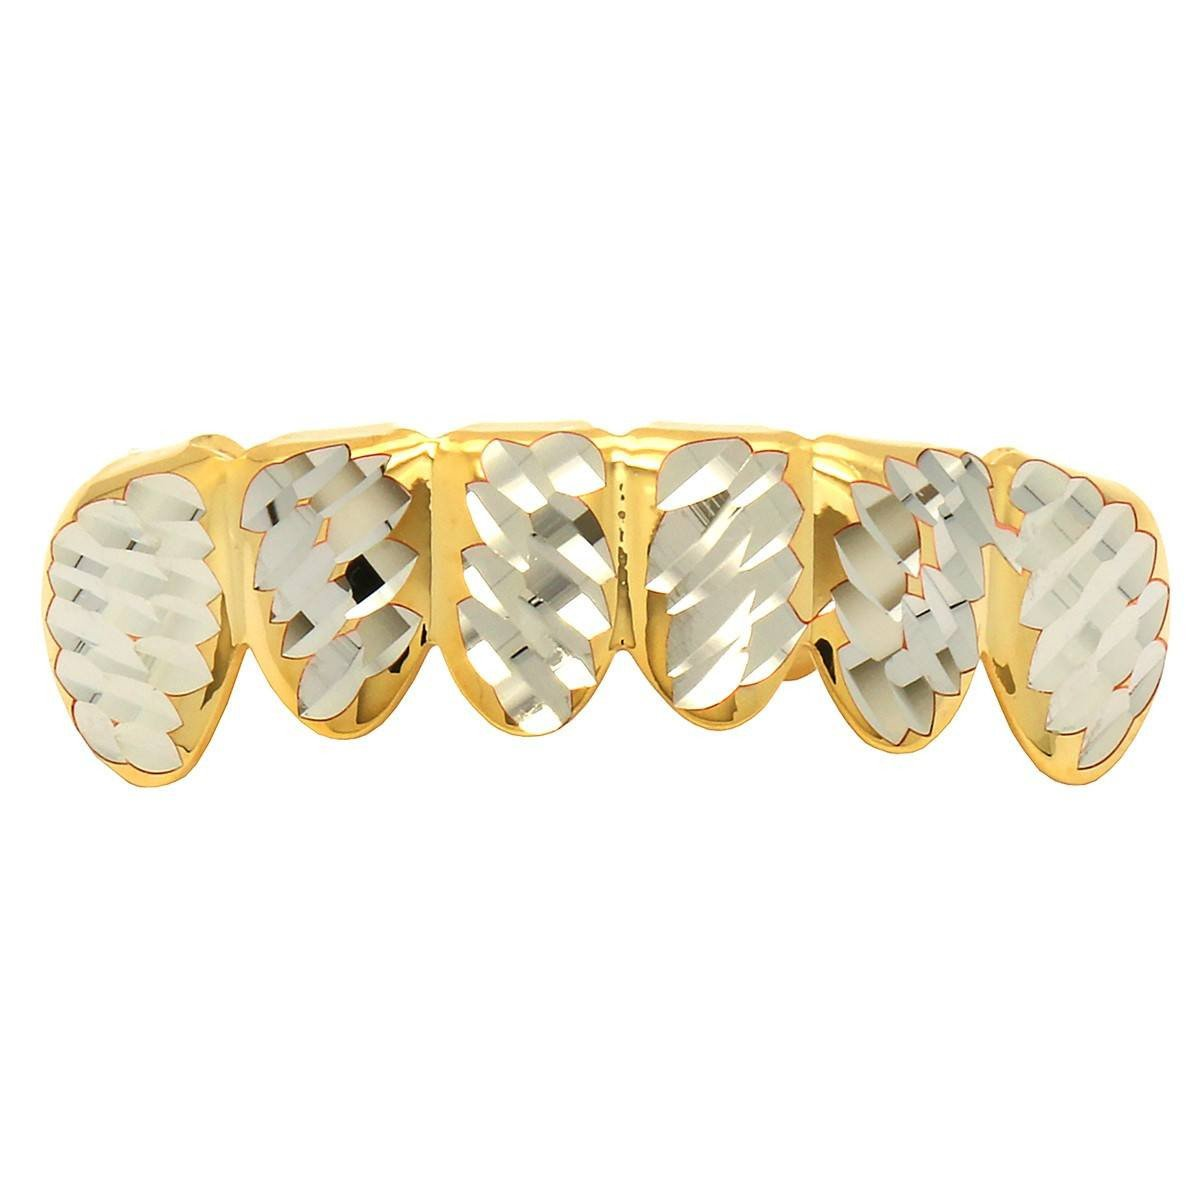 GRILLZ SET The Two-Tone Faceted